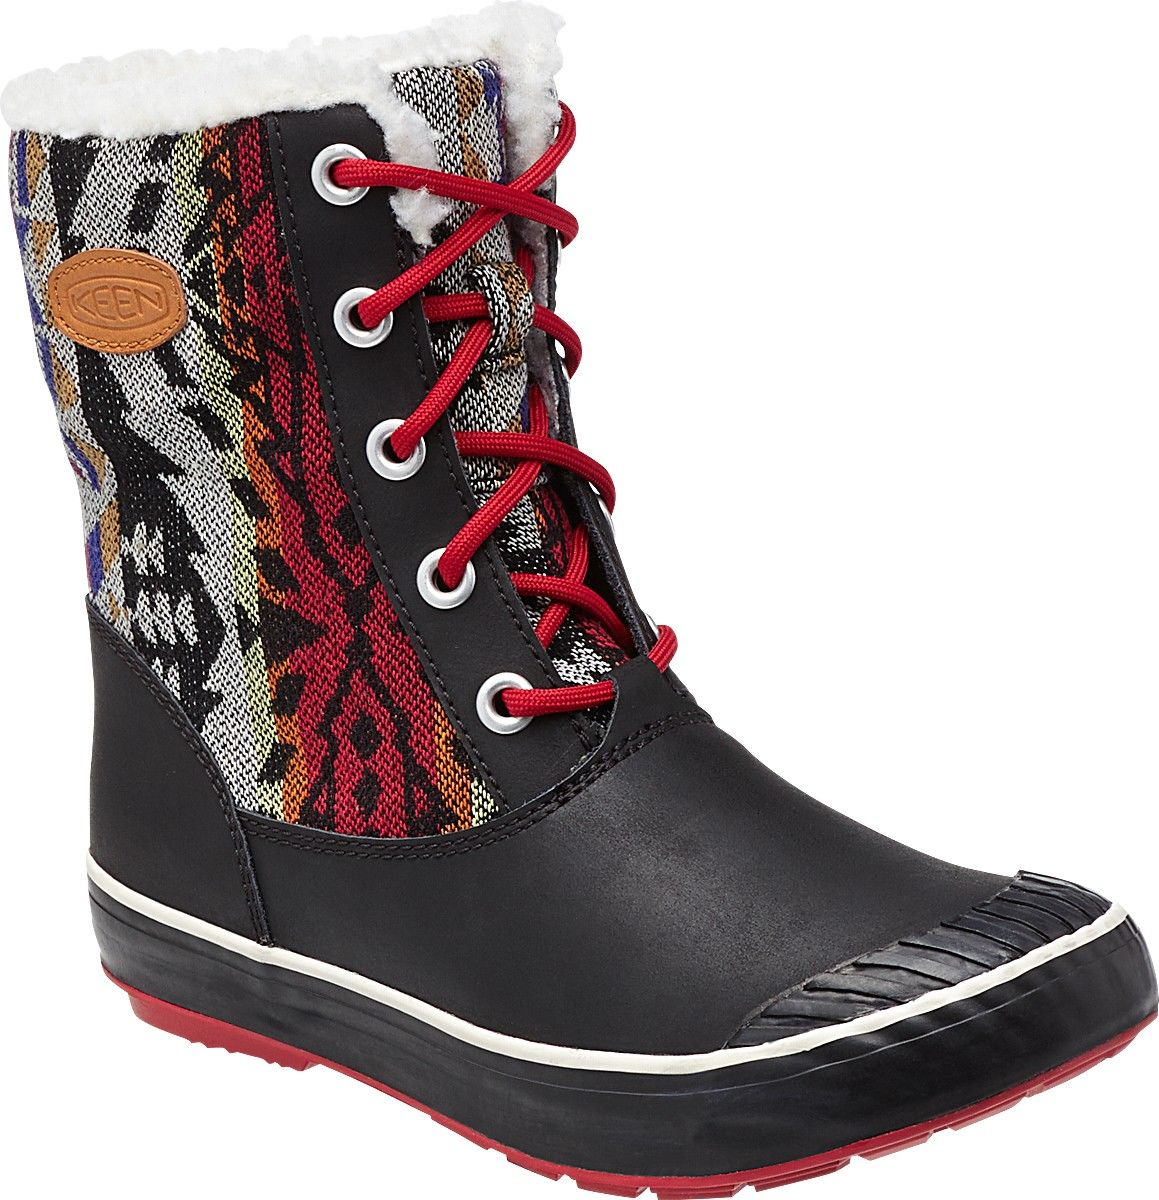 Keen W Elsa Boot Waterproof | Größe US 10.5 / EU 41 / UK 8 | Damen Winterstief